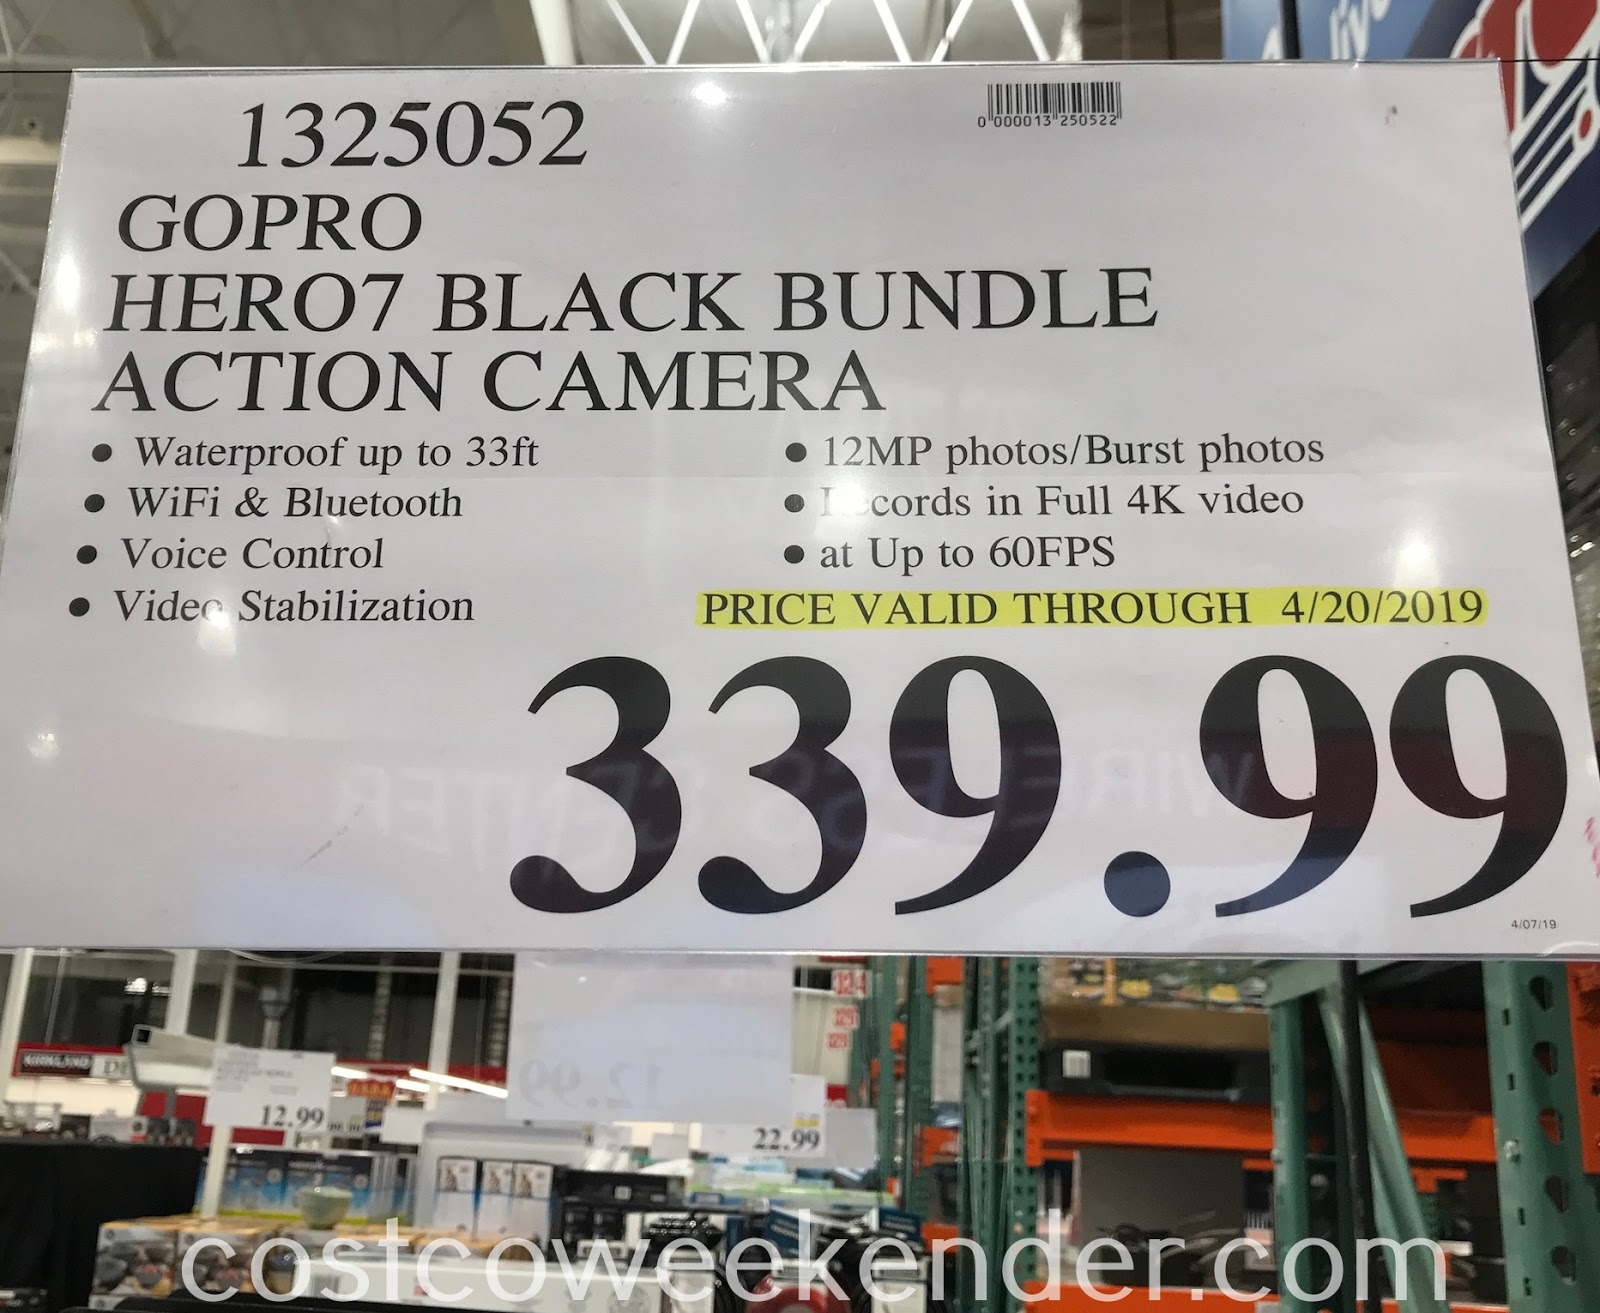 Deal for the GoPro Hero7 Black Camera Bundle at Costco